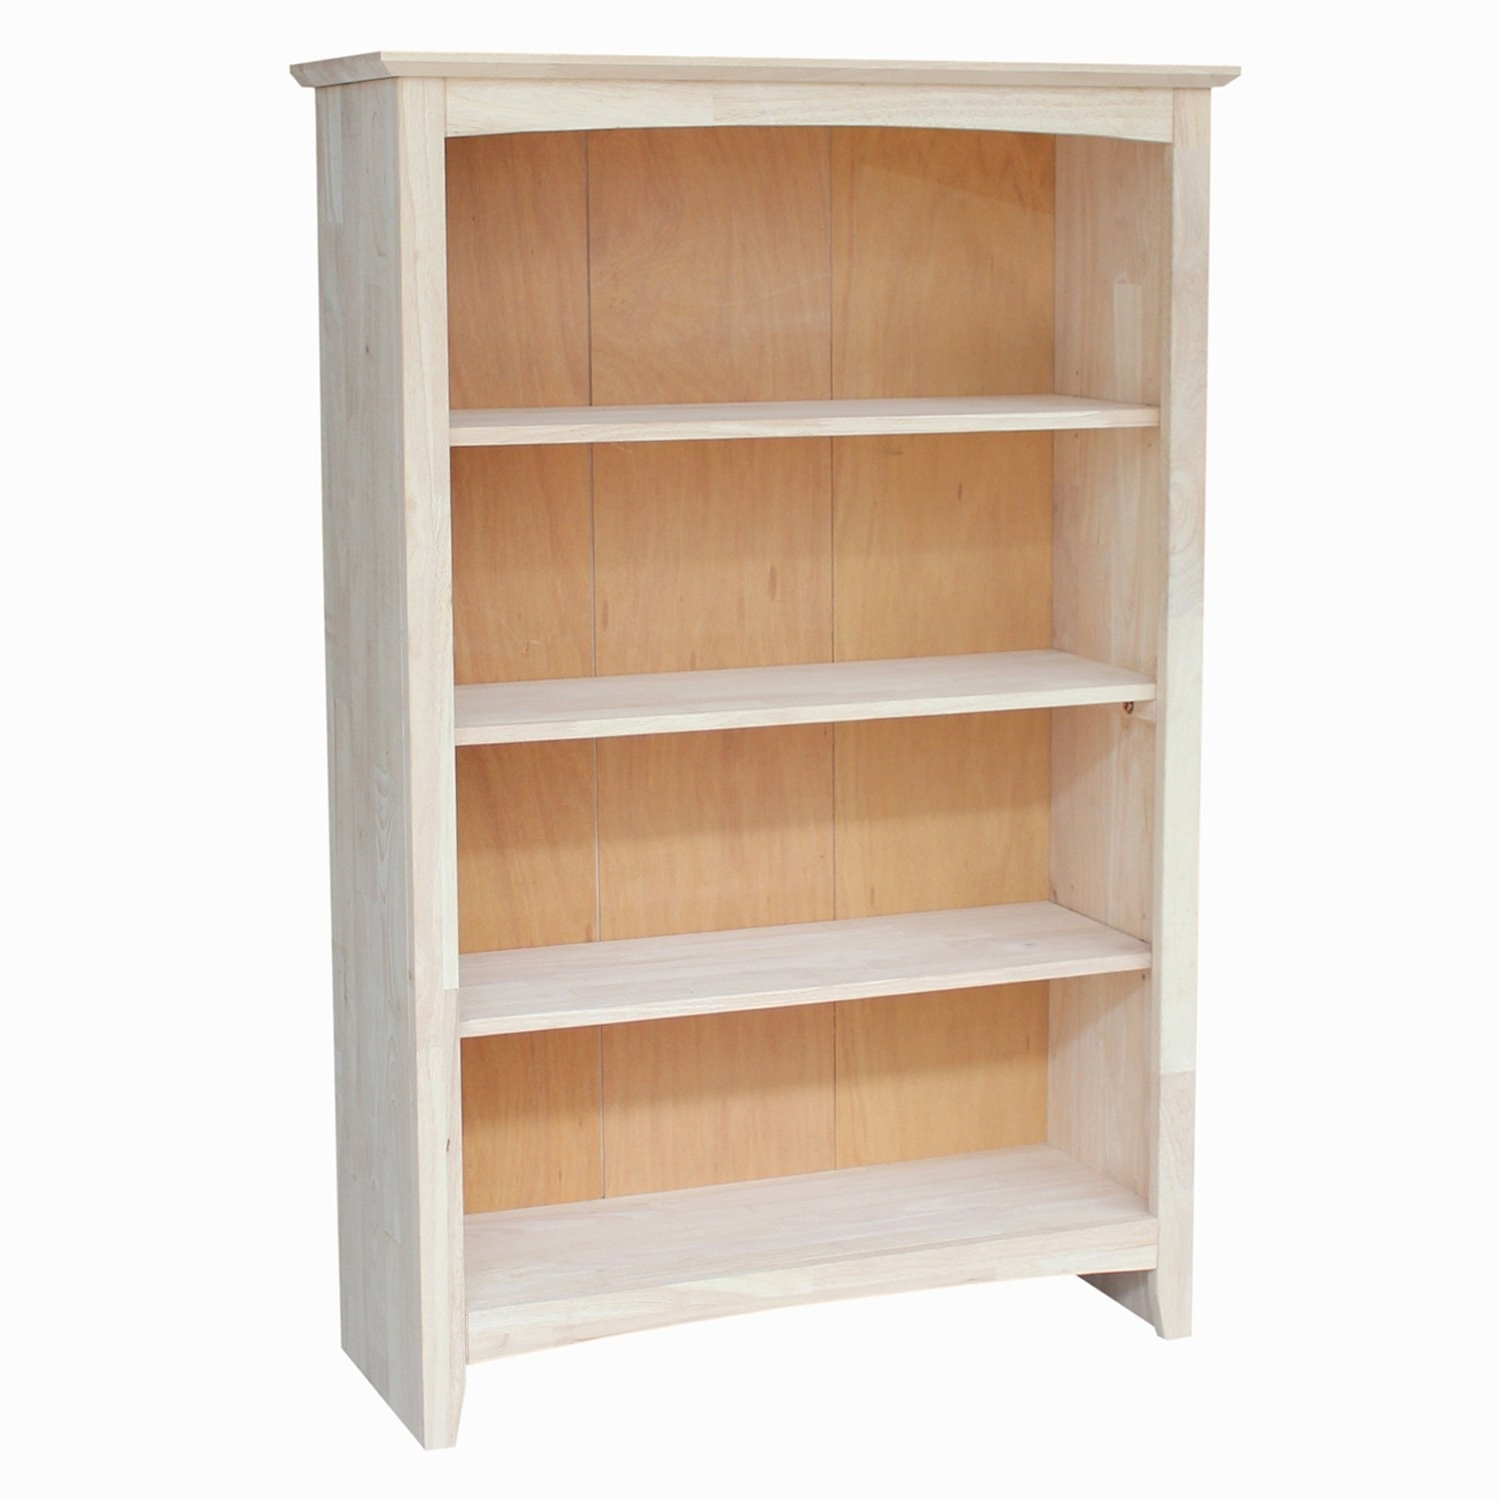 Latest Unfinished Bookcases In Amazon: International Concepts Shaker Bookcase, 48 Inch (View 10 of 15)